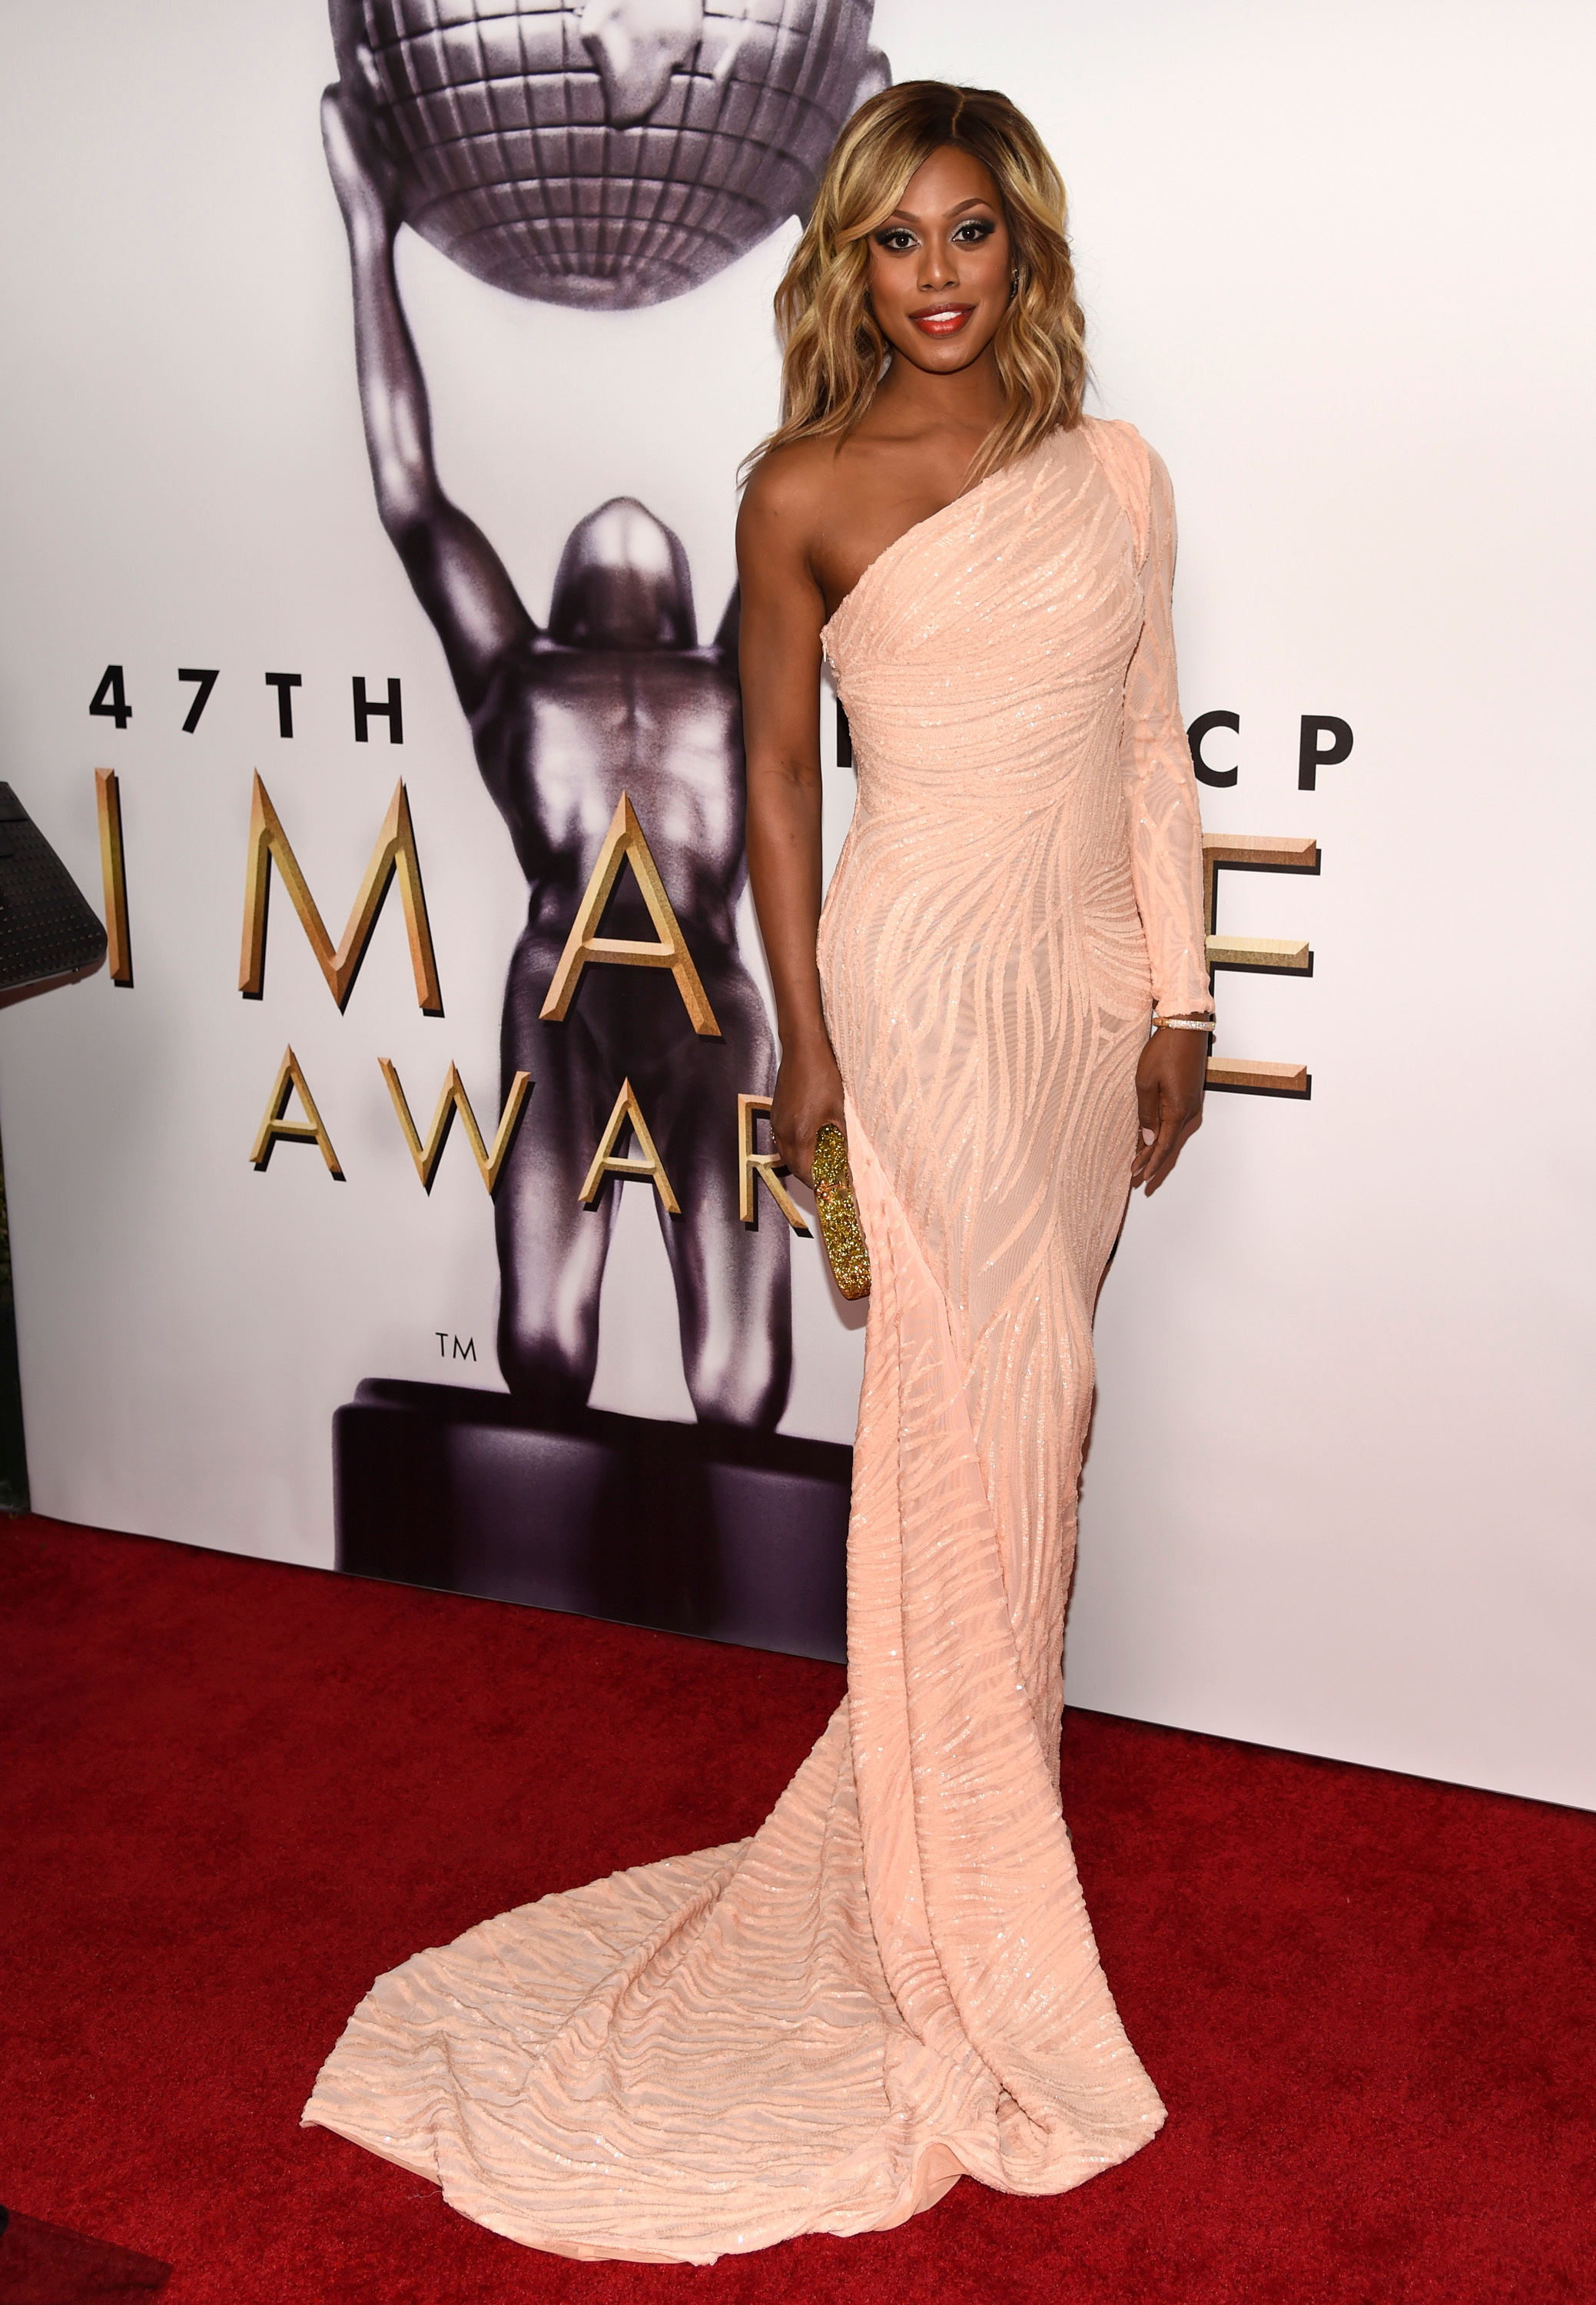 Laverne Cox arrives at the 47th NAACP Image Awards at the Pasadena Civic Auditorium in Pasadena on Feb. 5, 2016.